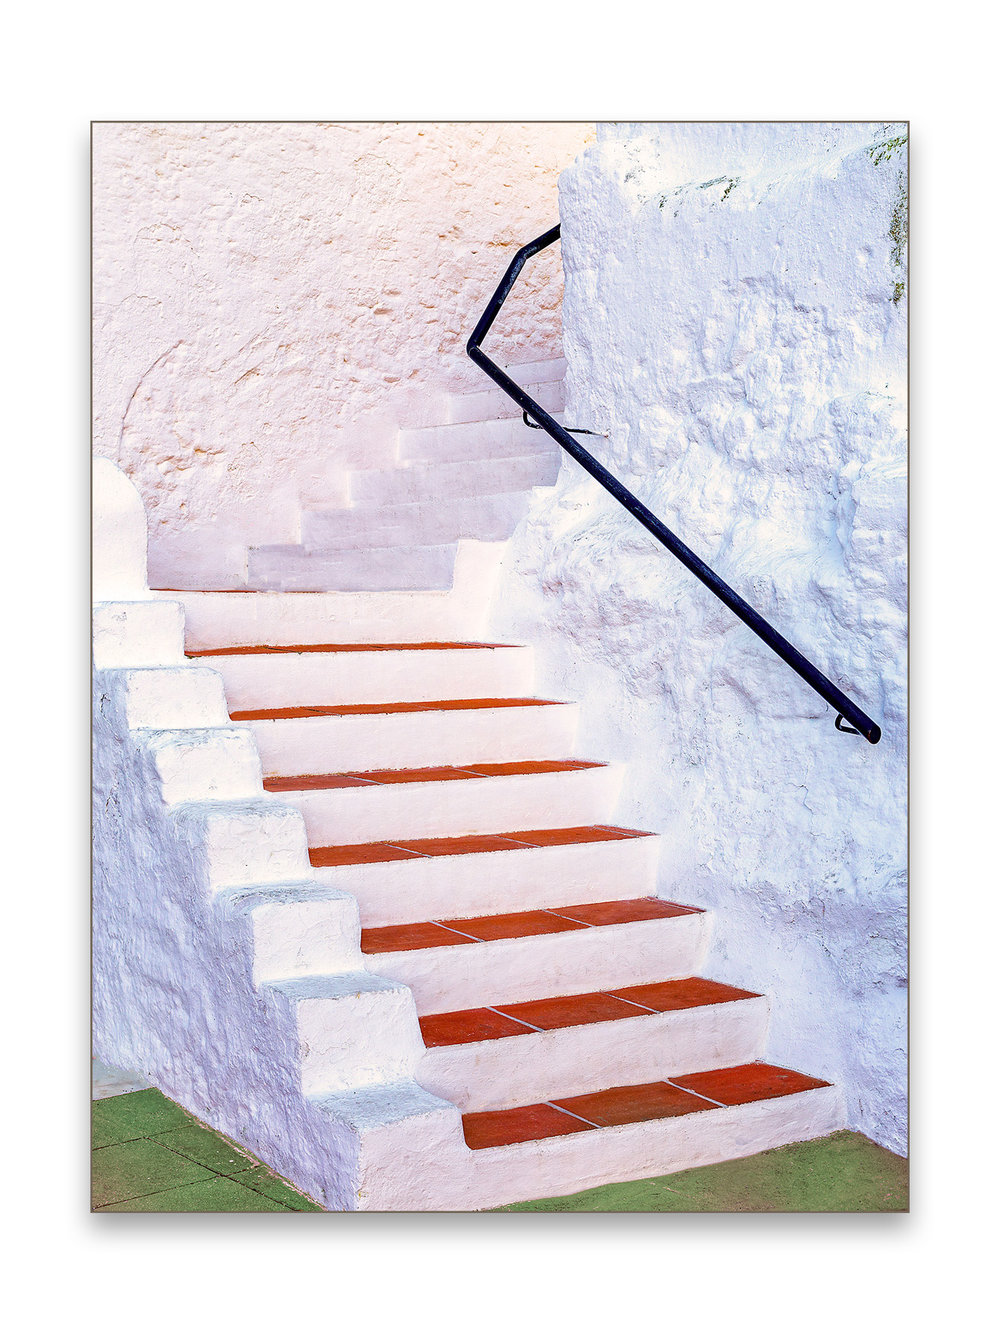 Church Stairs - 30 x 40 cm € 65,-45 x 60 cm € 95,-60 x 90 cm, € 175,-Limited edition of 107 of 10 availableClick on the image to see larger